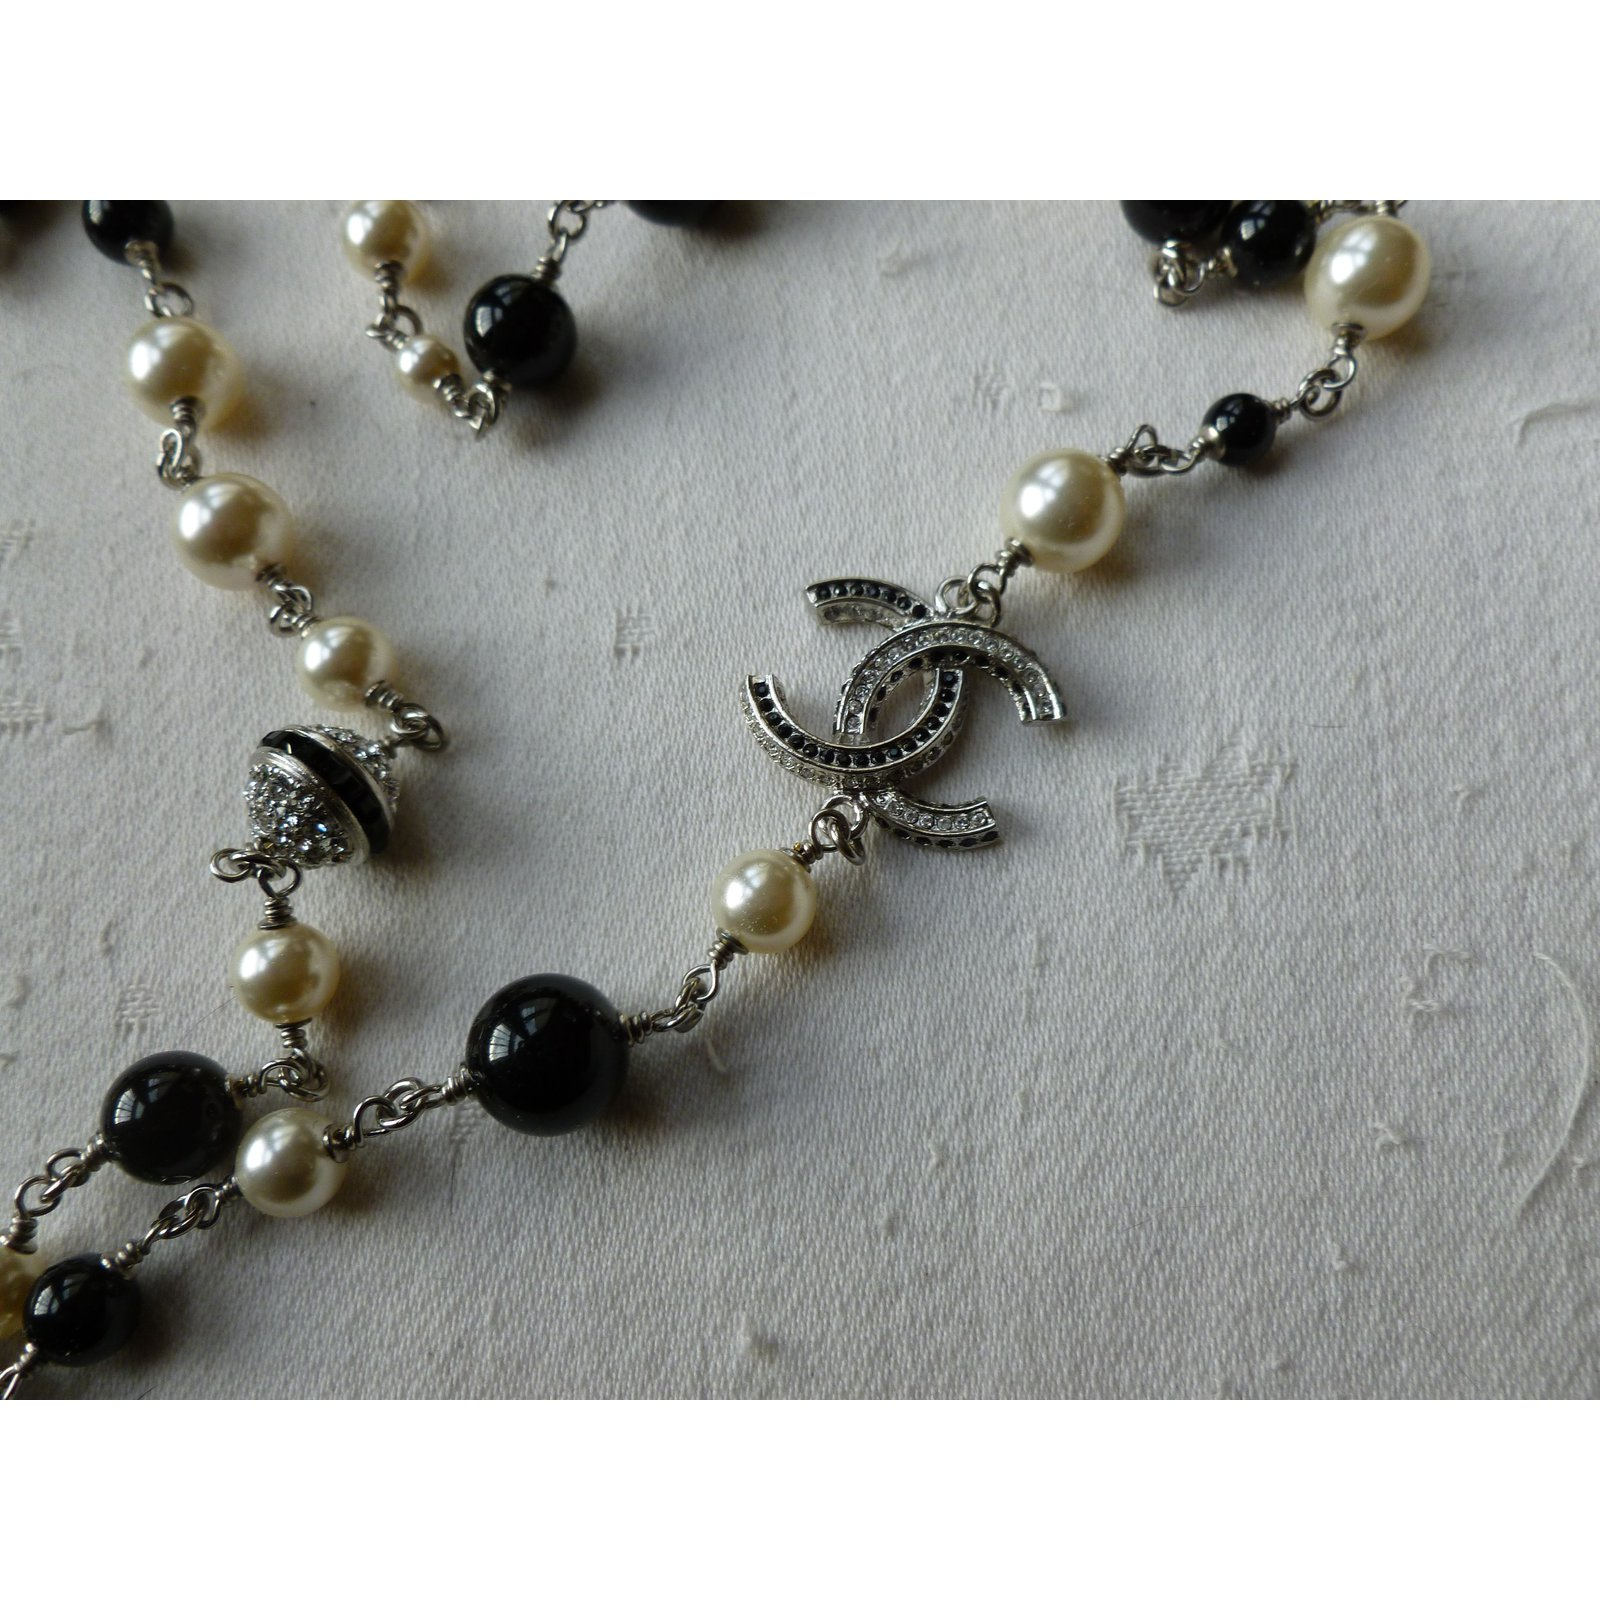 973aa2c84aaa75 Chanel Long necklaces Long necklaces Steel Silvery ref.57117 - Joli Closet